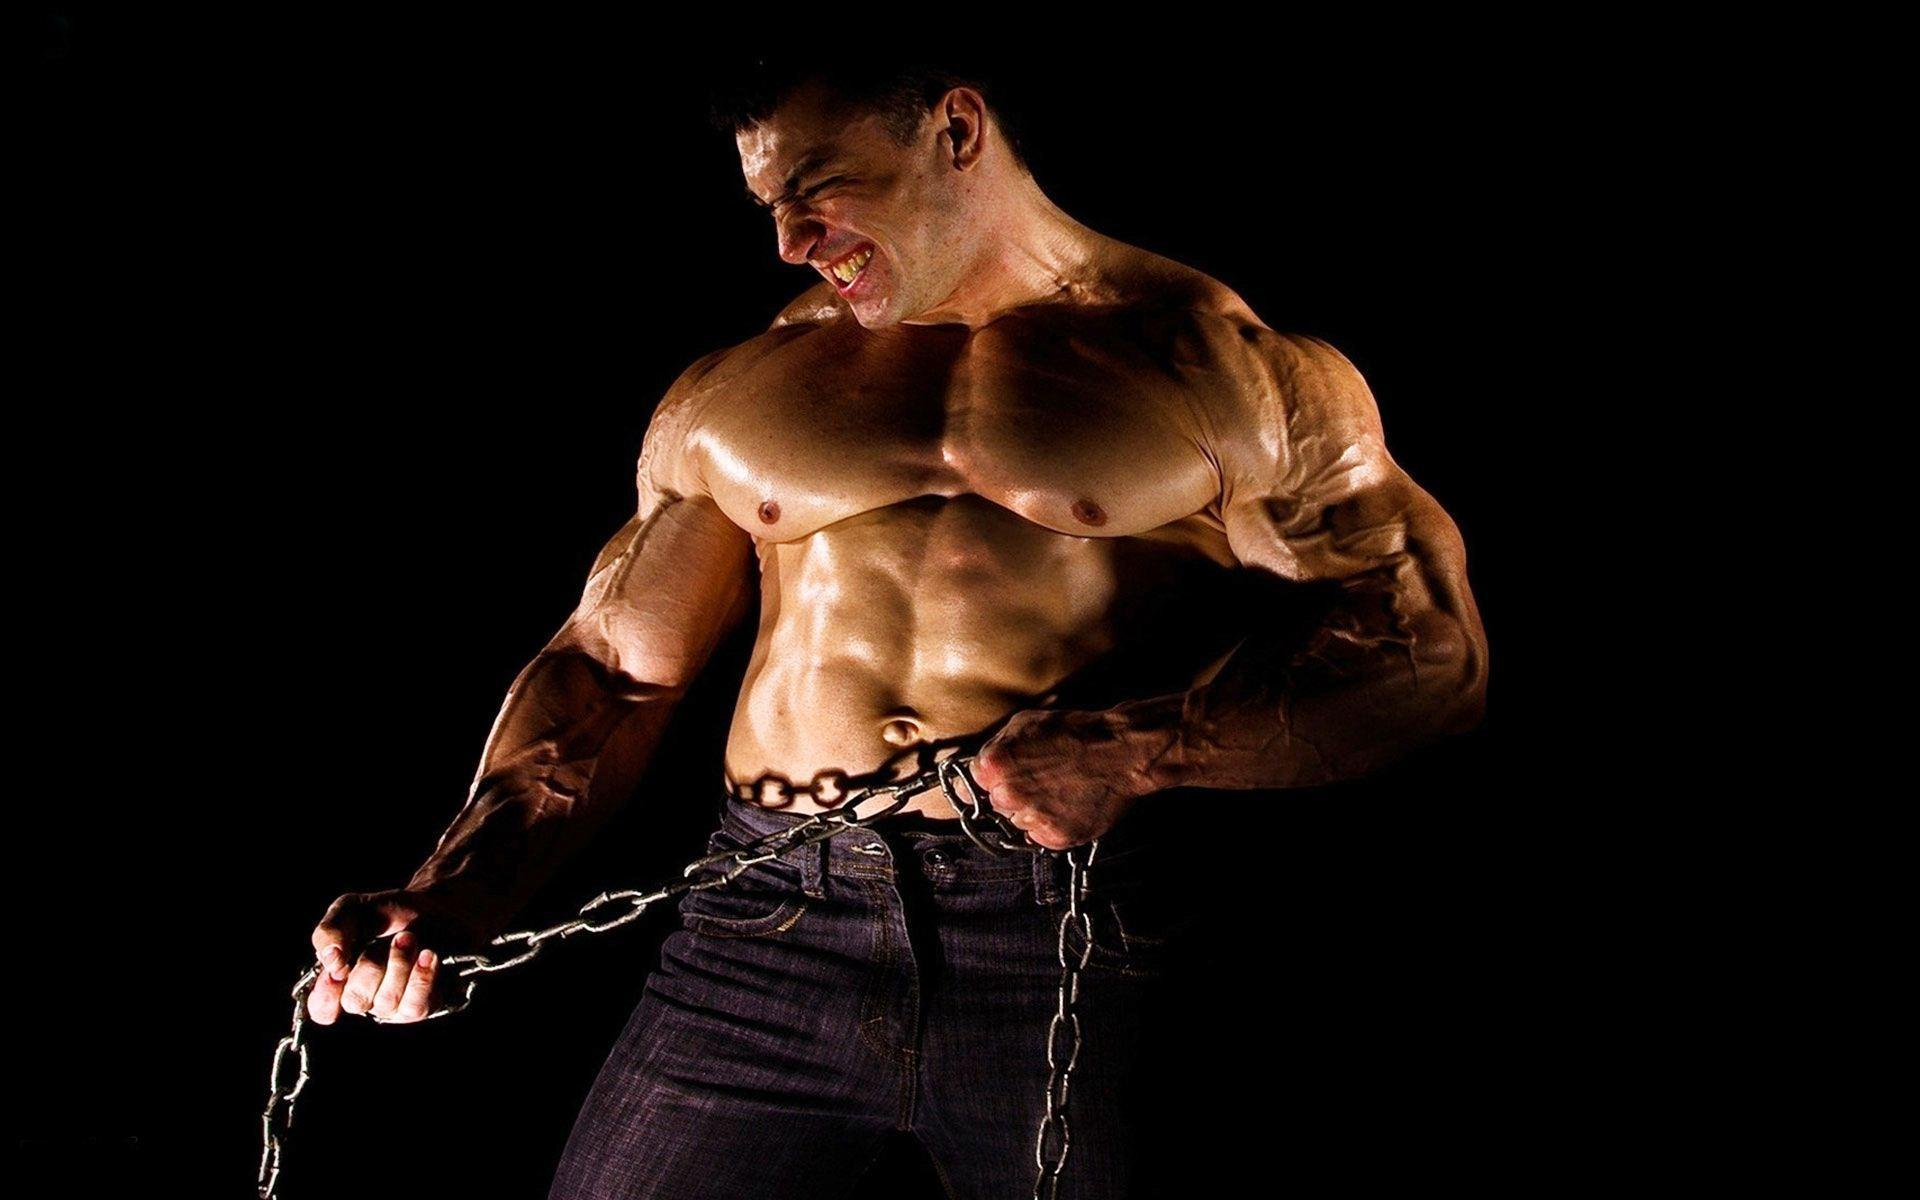 Bodybuilding wallpaper hd 2014